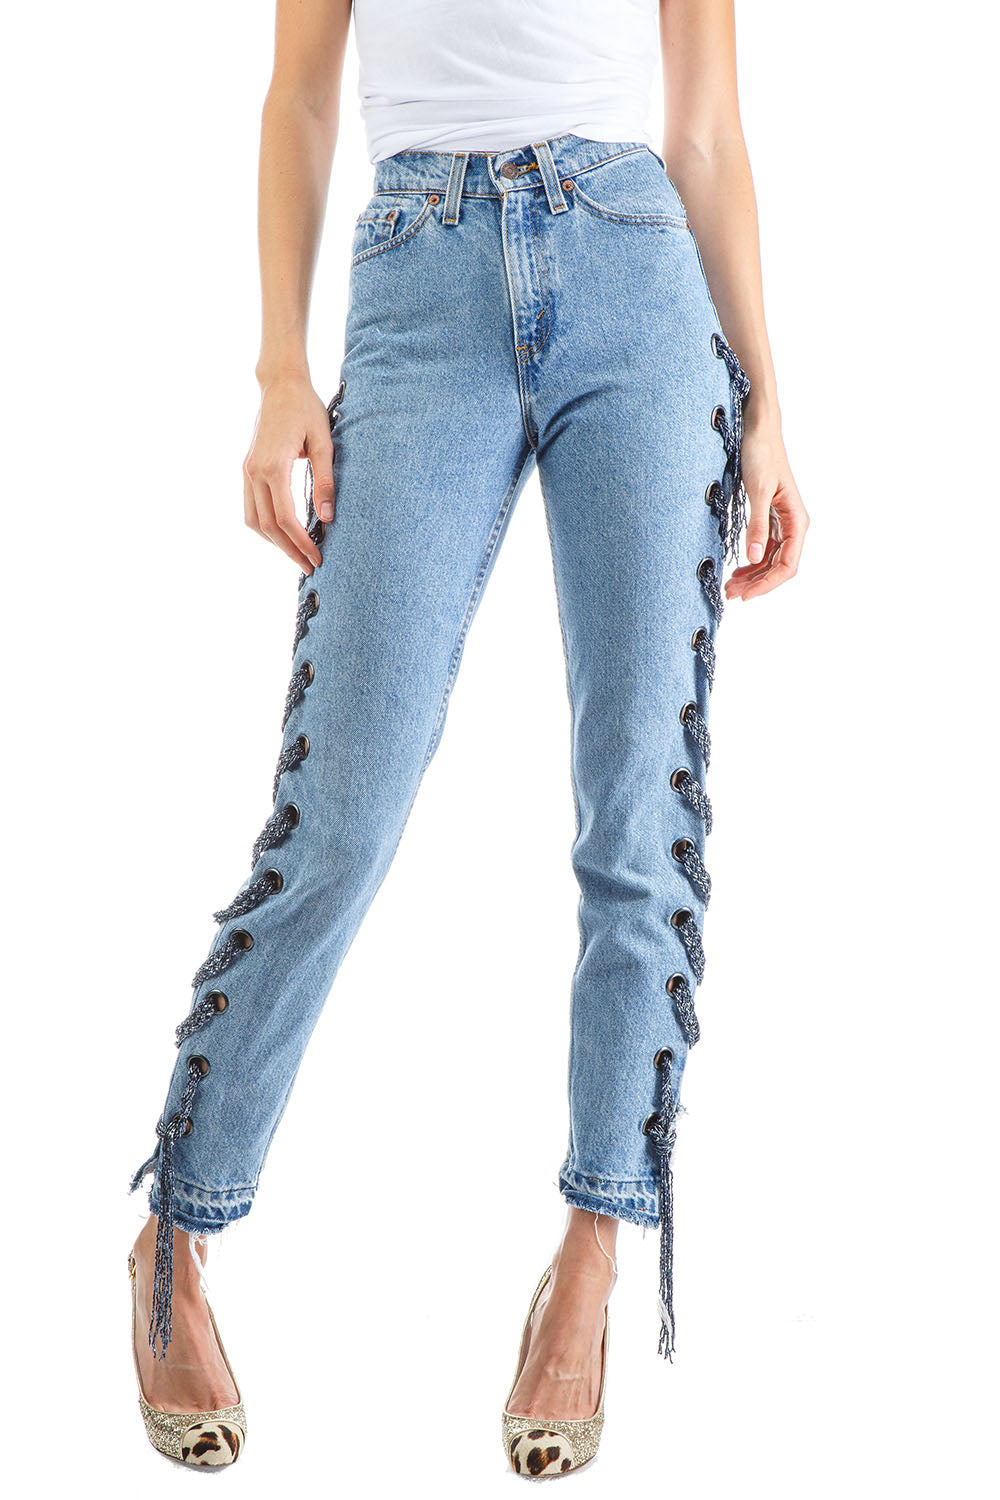 Beverly Hills Jeans